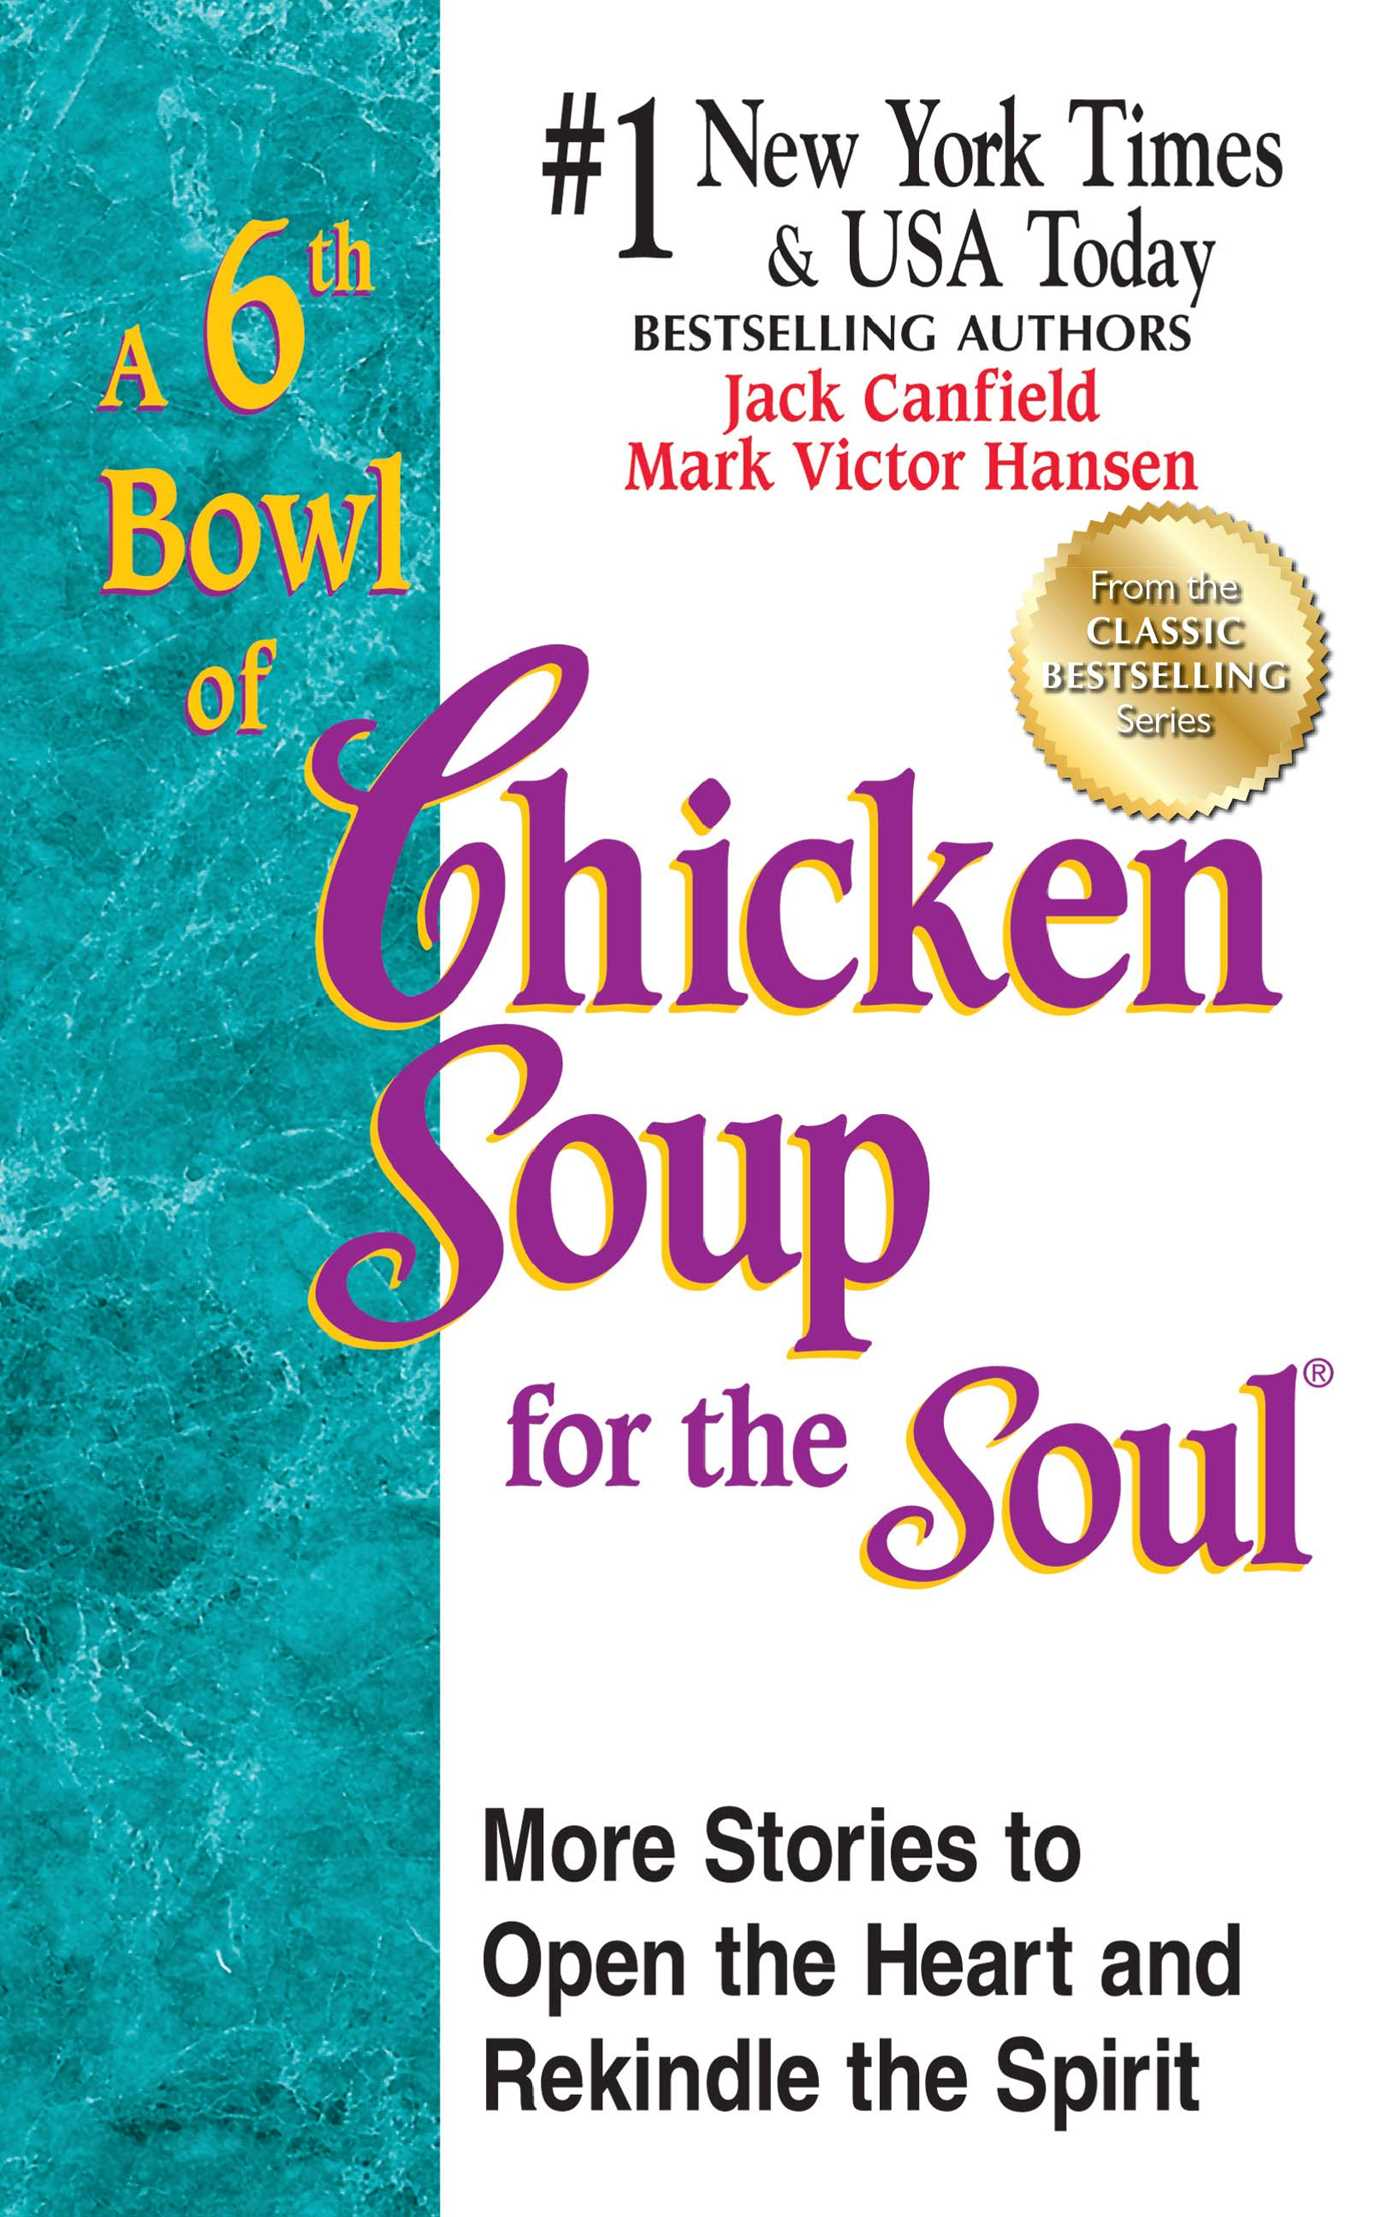 A-6th-bowl-of-chicken-soup-for-the-soul-9781623610739_hr